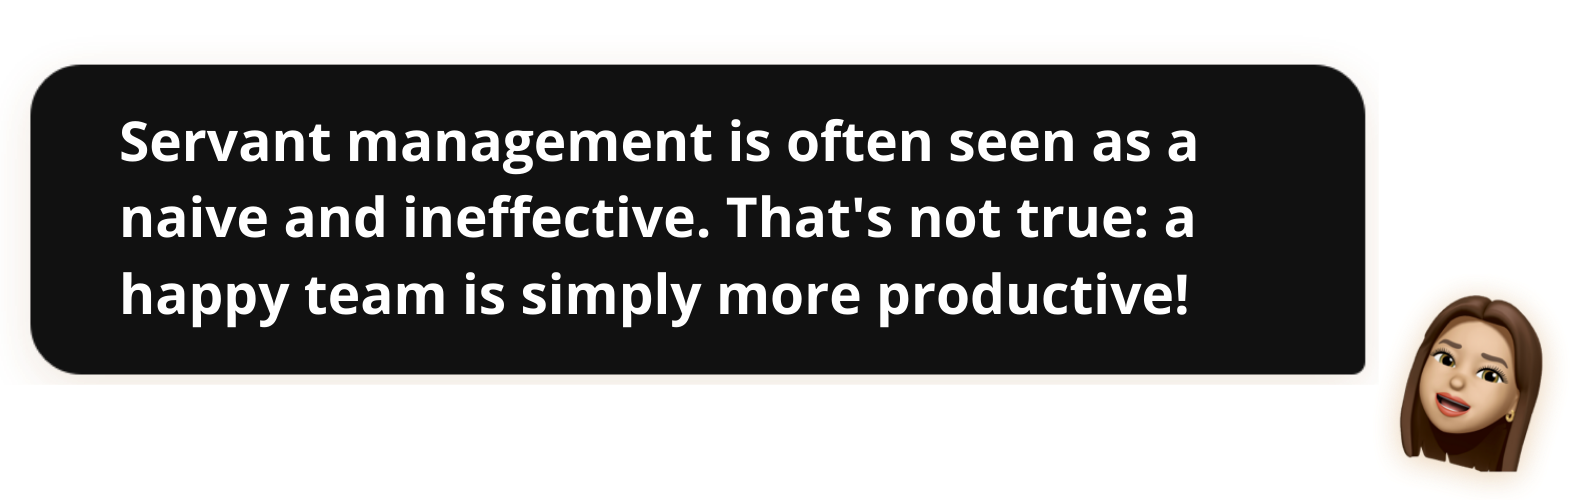 Servant management is often sees as naive and ineffective. That's not true: a happy team is simply more productive!